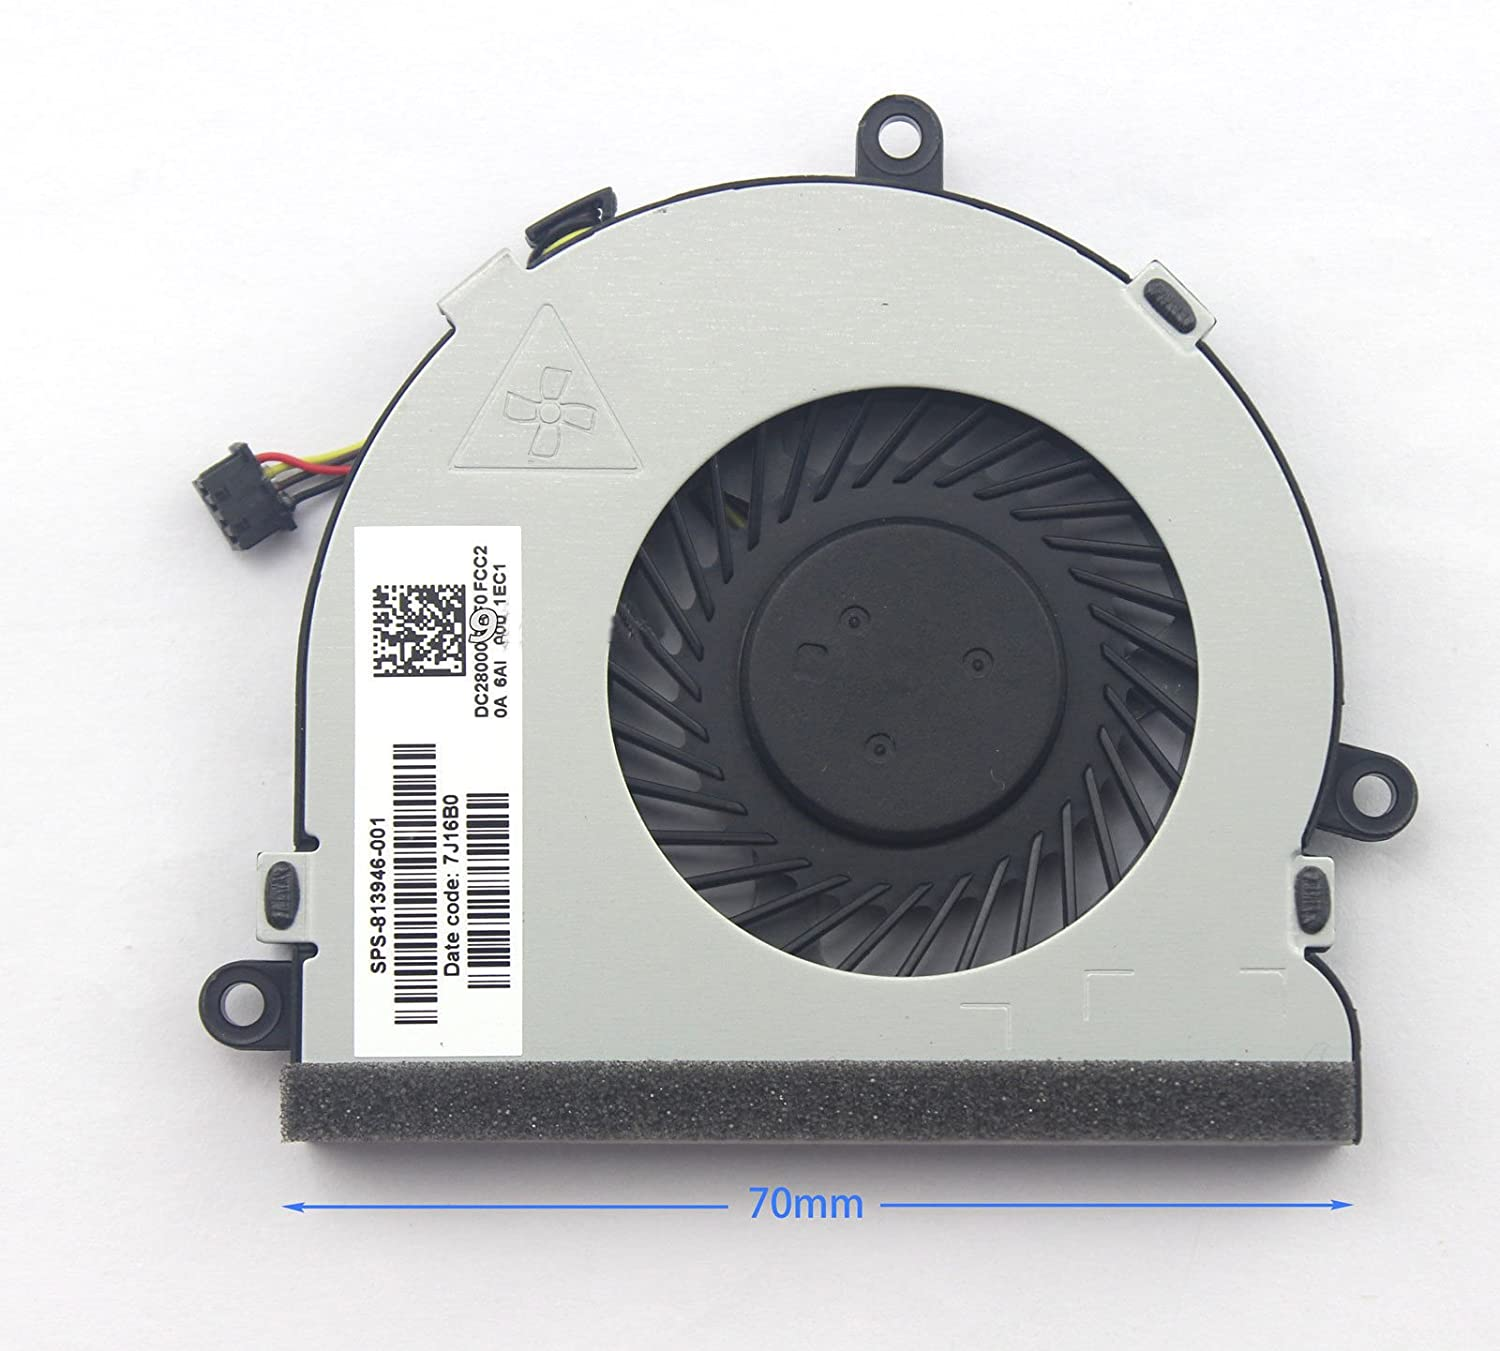 New Cpu Cooling Cooler Fan For HP 15-BA 15-ba008ca 15-ba009dx 15-ba010nr 15-ba013cl 15-ba138ca 15-ba140ca 15-ba113cl